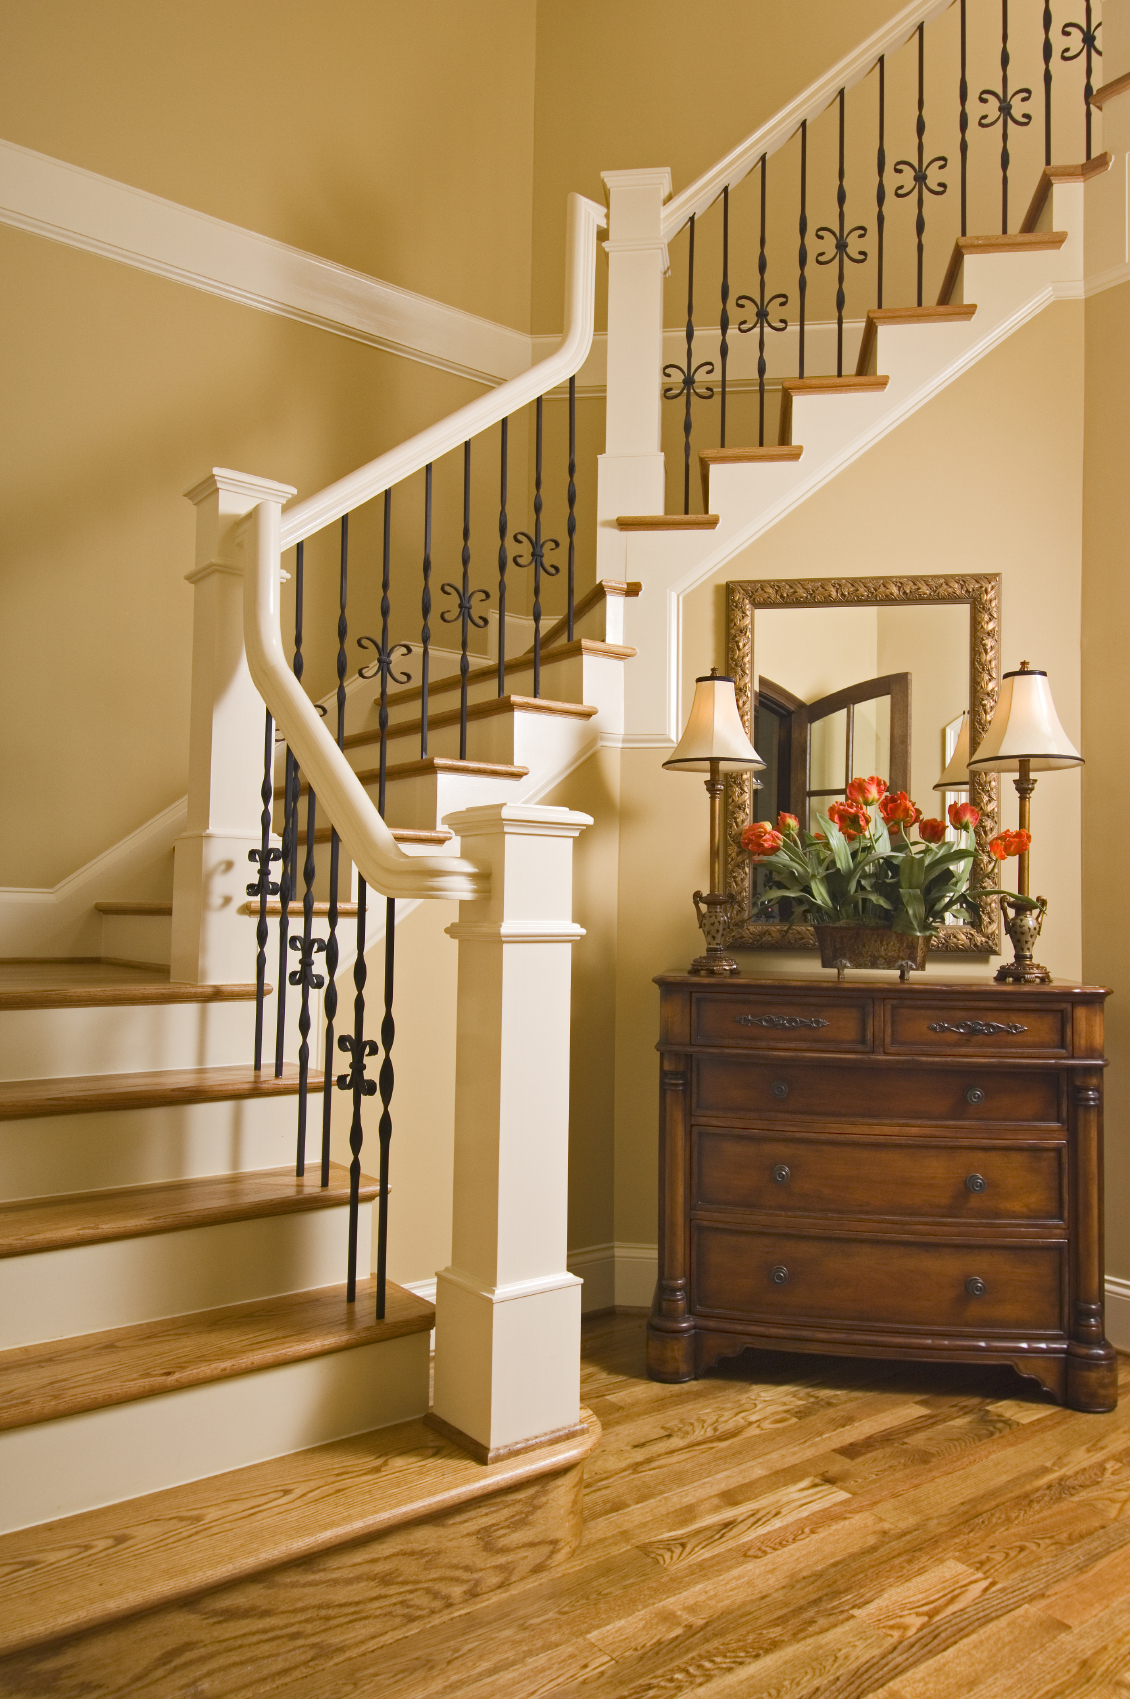 46 Beautiful Entrance Hall Designs And Ideas Pictures